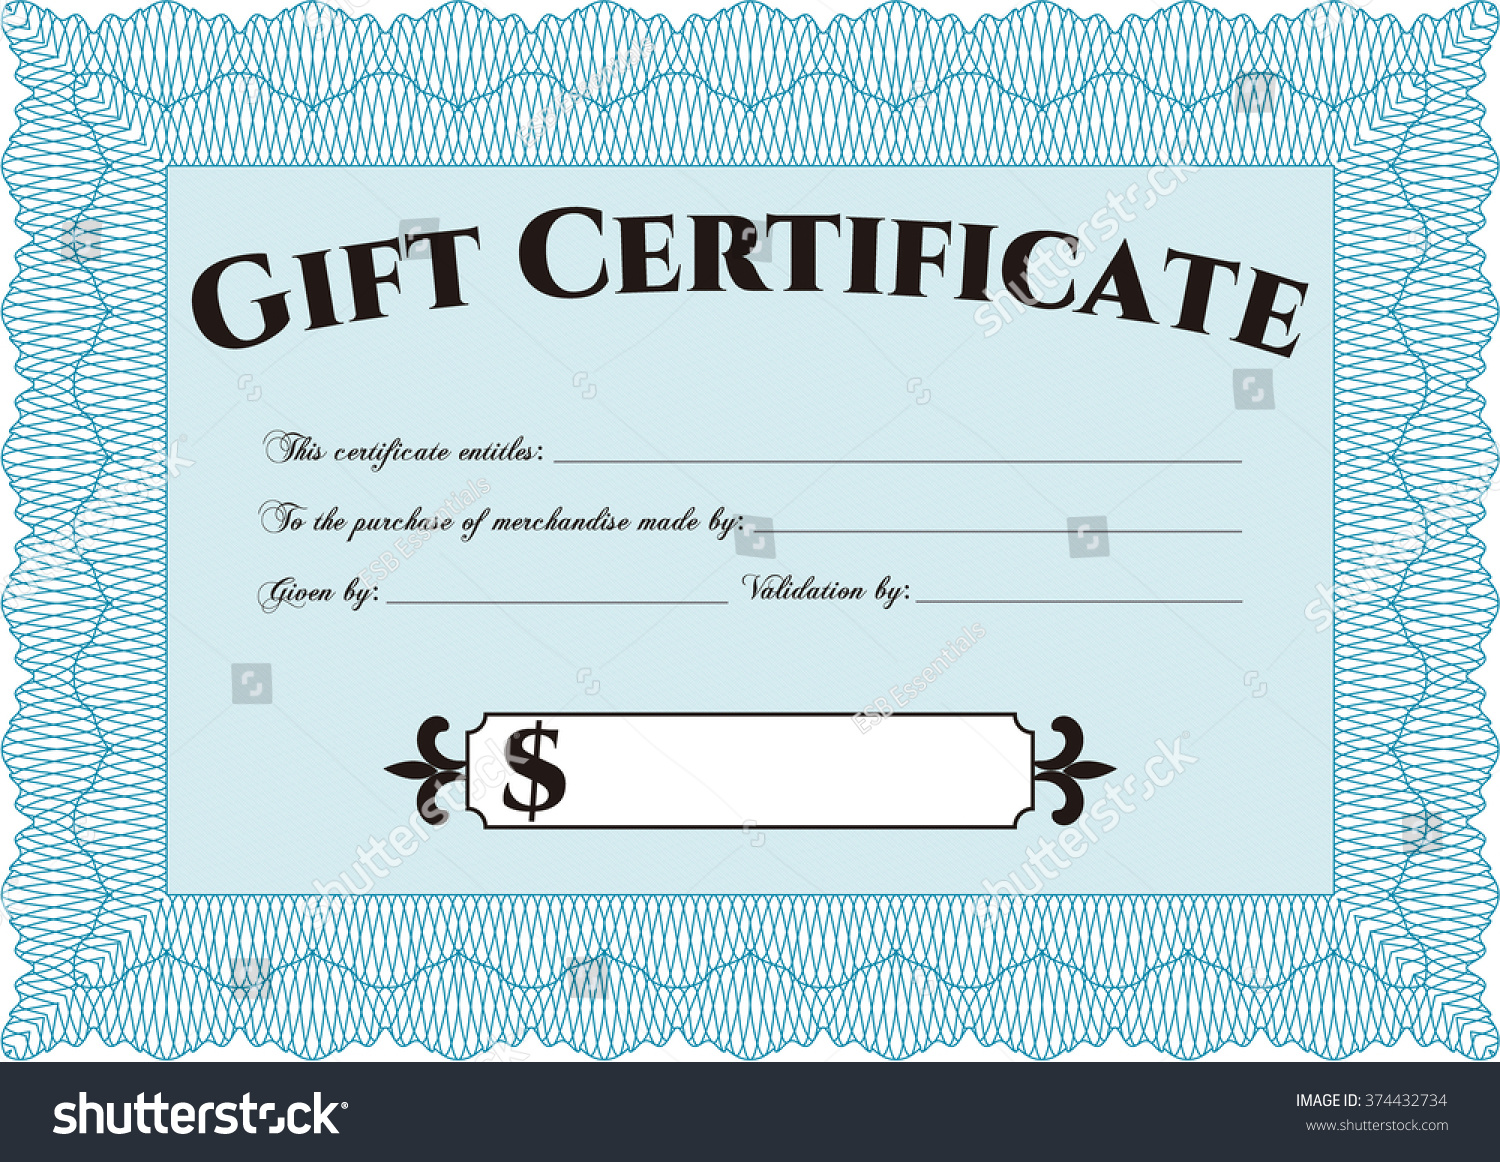 Gift certificate template detailed printer friendly stock vector gift certificate template detailed printer friendly complex design alramifo Image collections